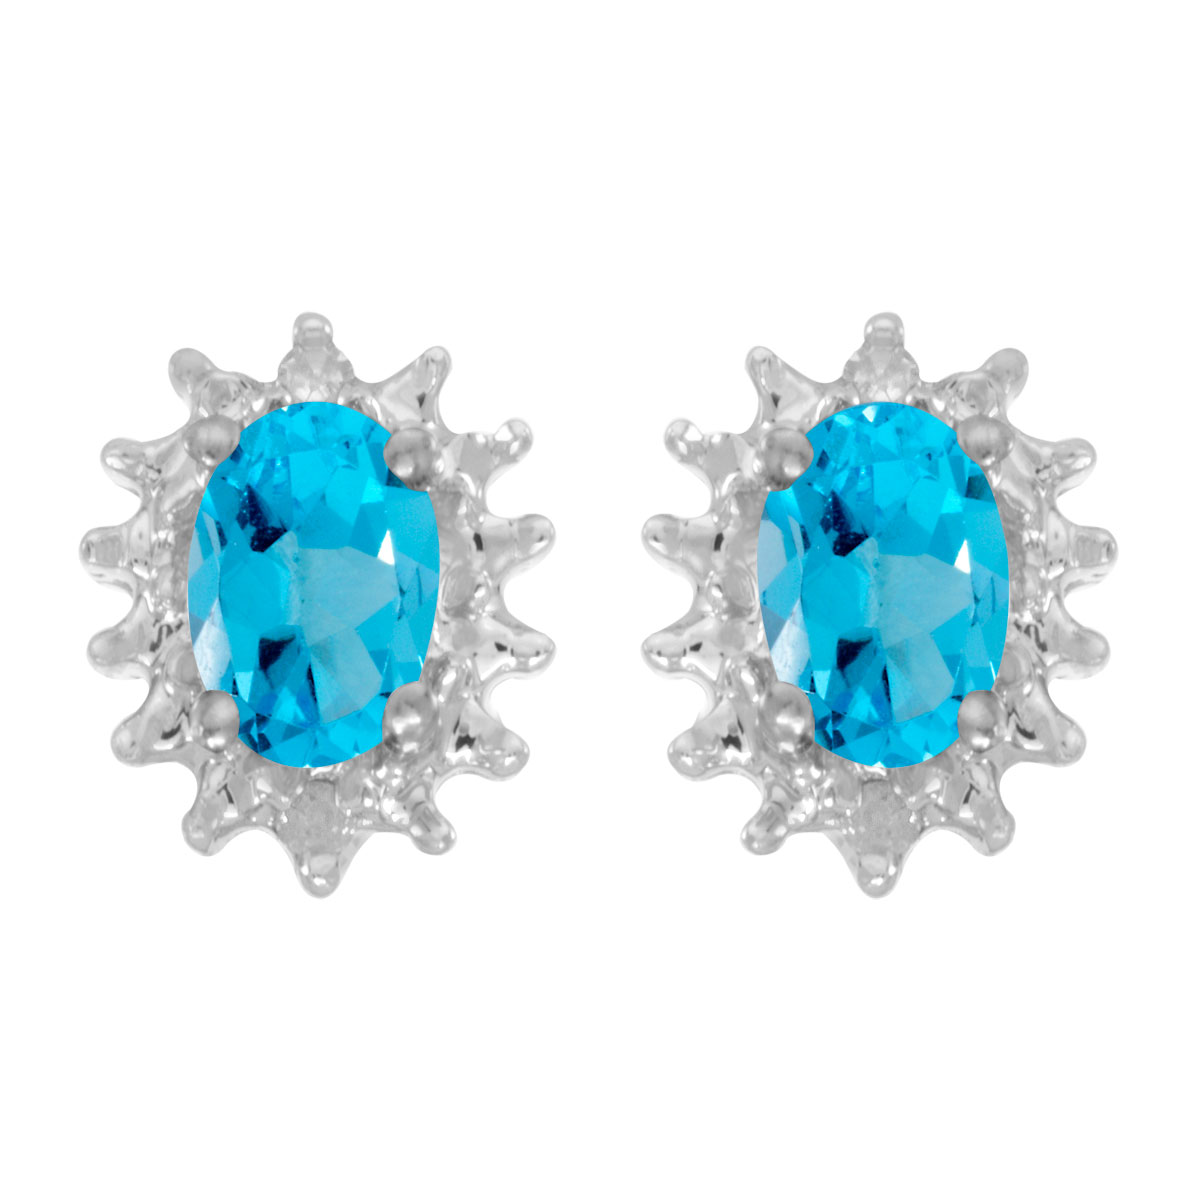 These 14k white gold oval blue topaz and diamond earrings feature 6x4 mm genuine natural blue top...